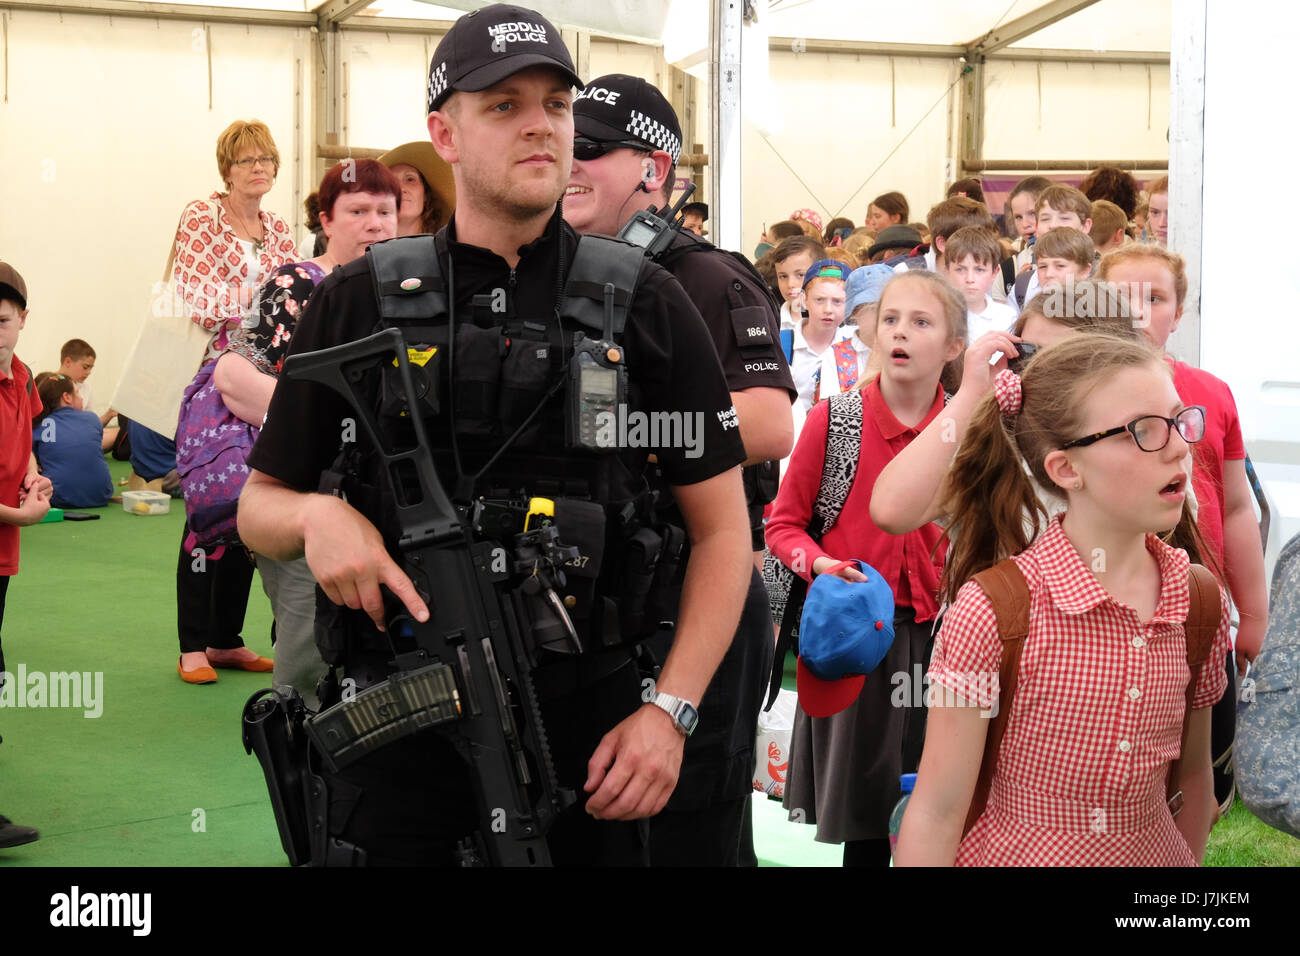 Armed Police officers among visiting school children at the Hay Festival May 2017 - Stock Image